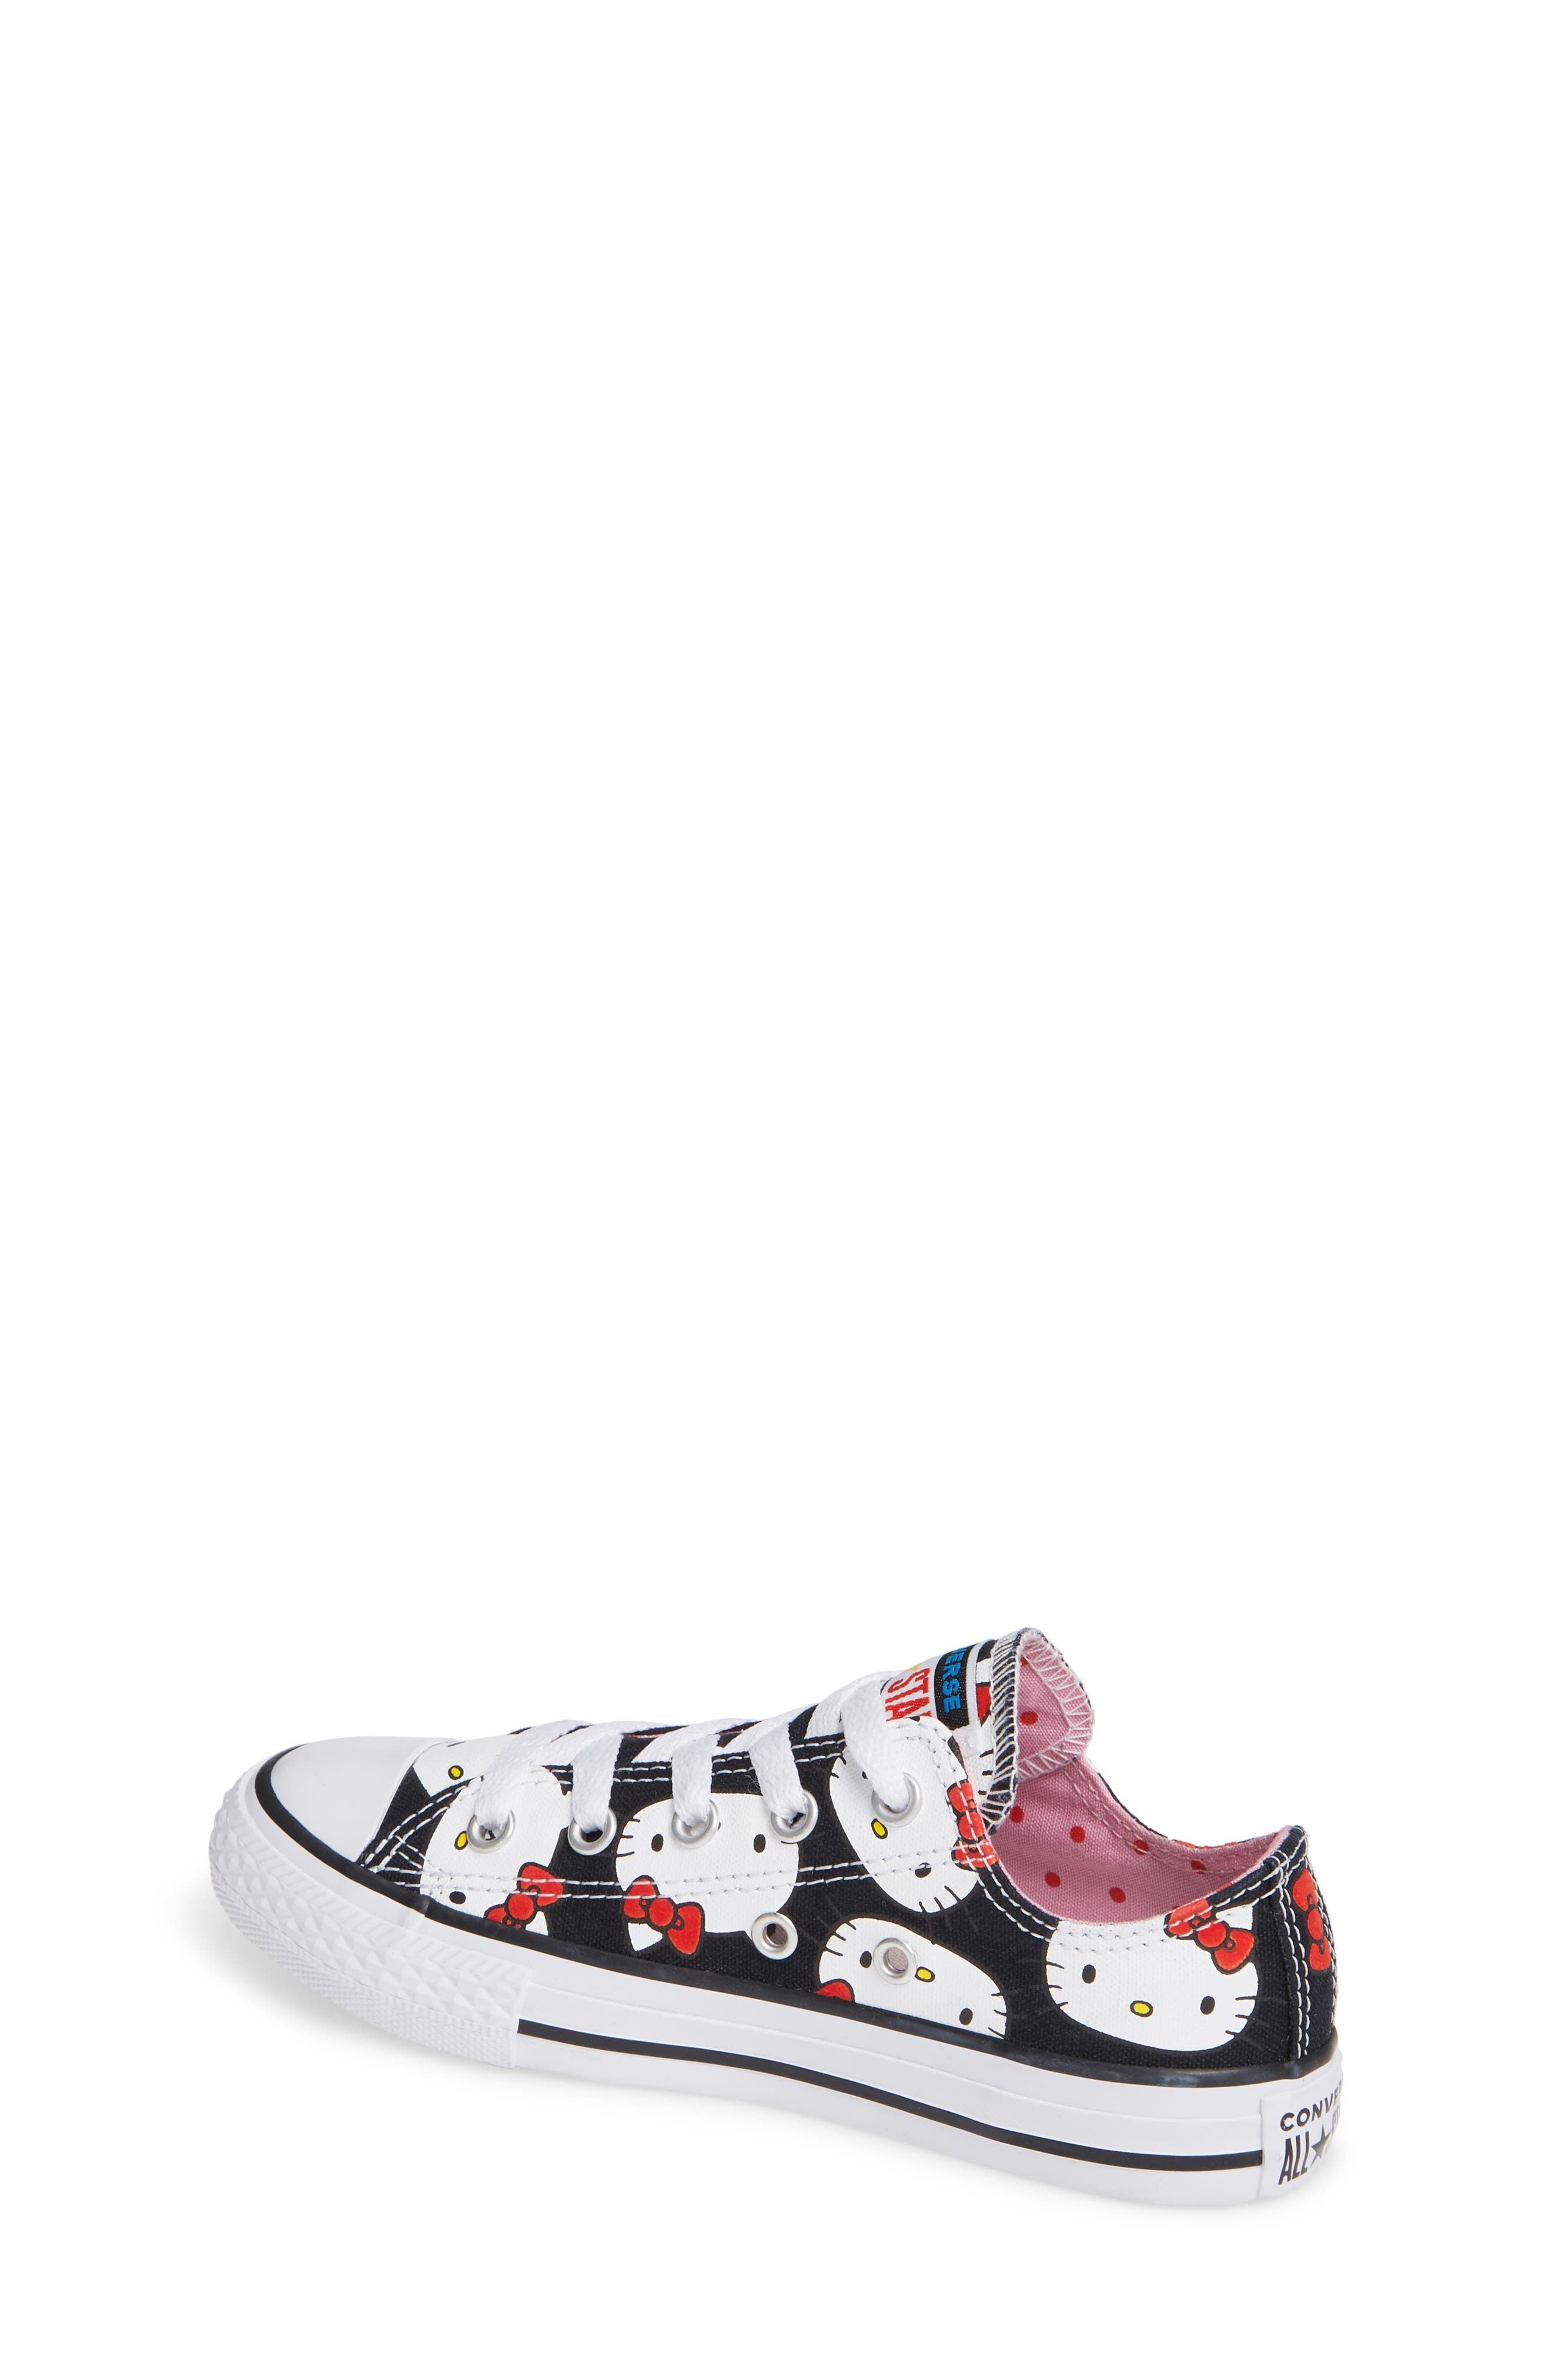 CONVERSE,                             Chuck Taylor<sup>®</sup> All Star<sup>®</sup> Hello Kitty<sup>®</sup> Sneaker,                             Alternate thumbnail 2, color,                             001